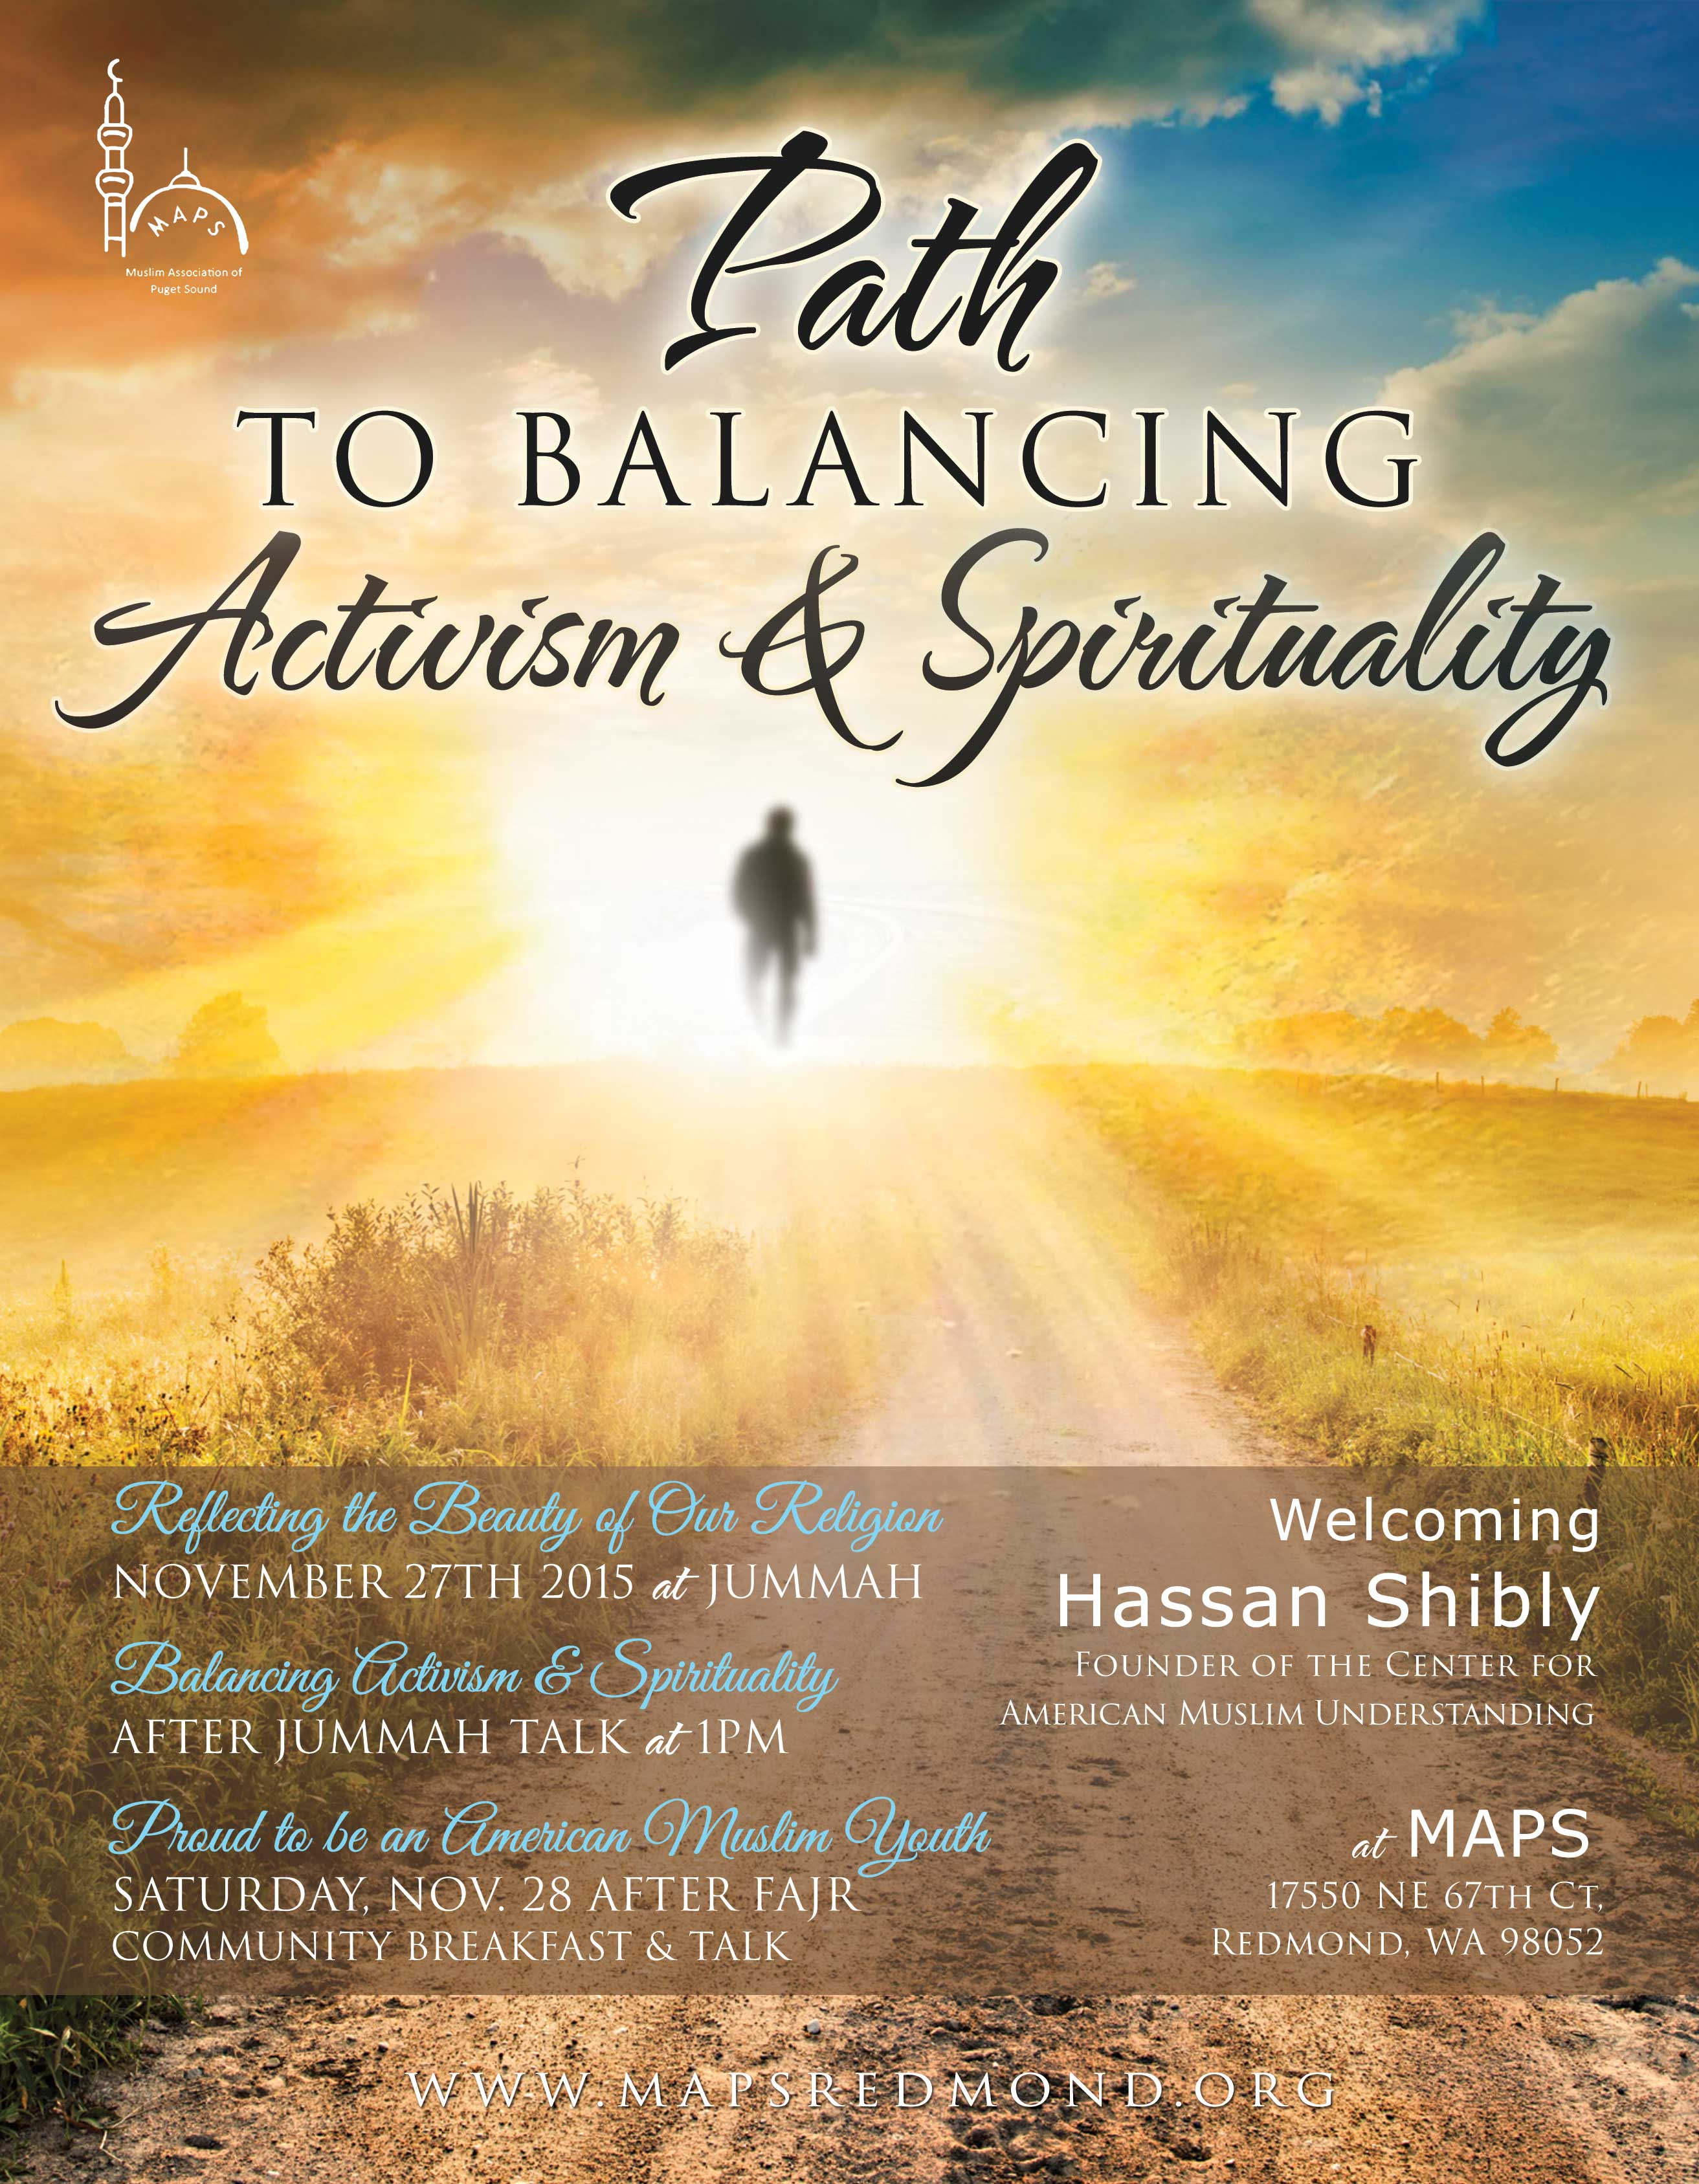 MAPS_path_spirituality_activism_flyer_2015_web